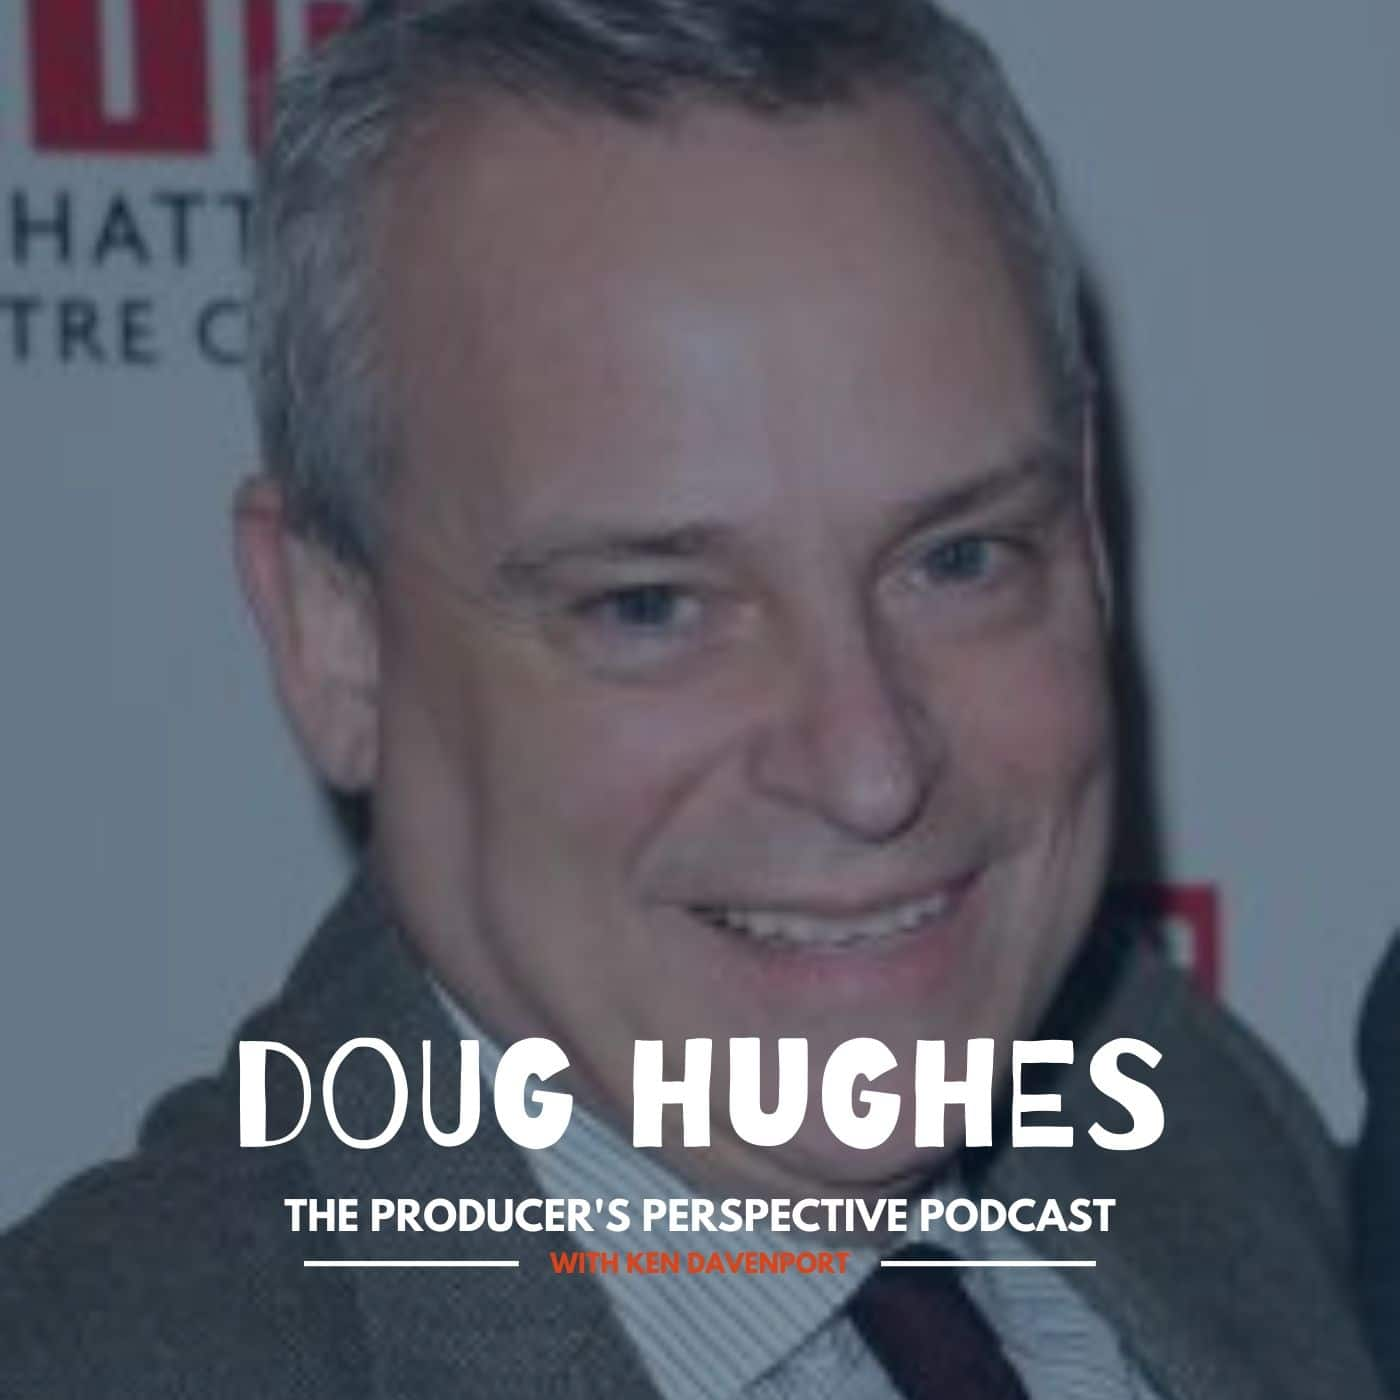 Ken Davenport's The Producer's Perspective Podcast Episode 141 - Doug Hughes